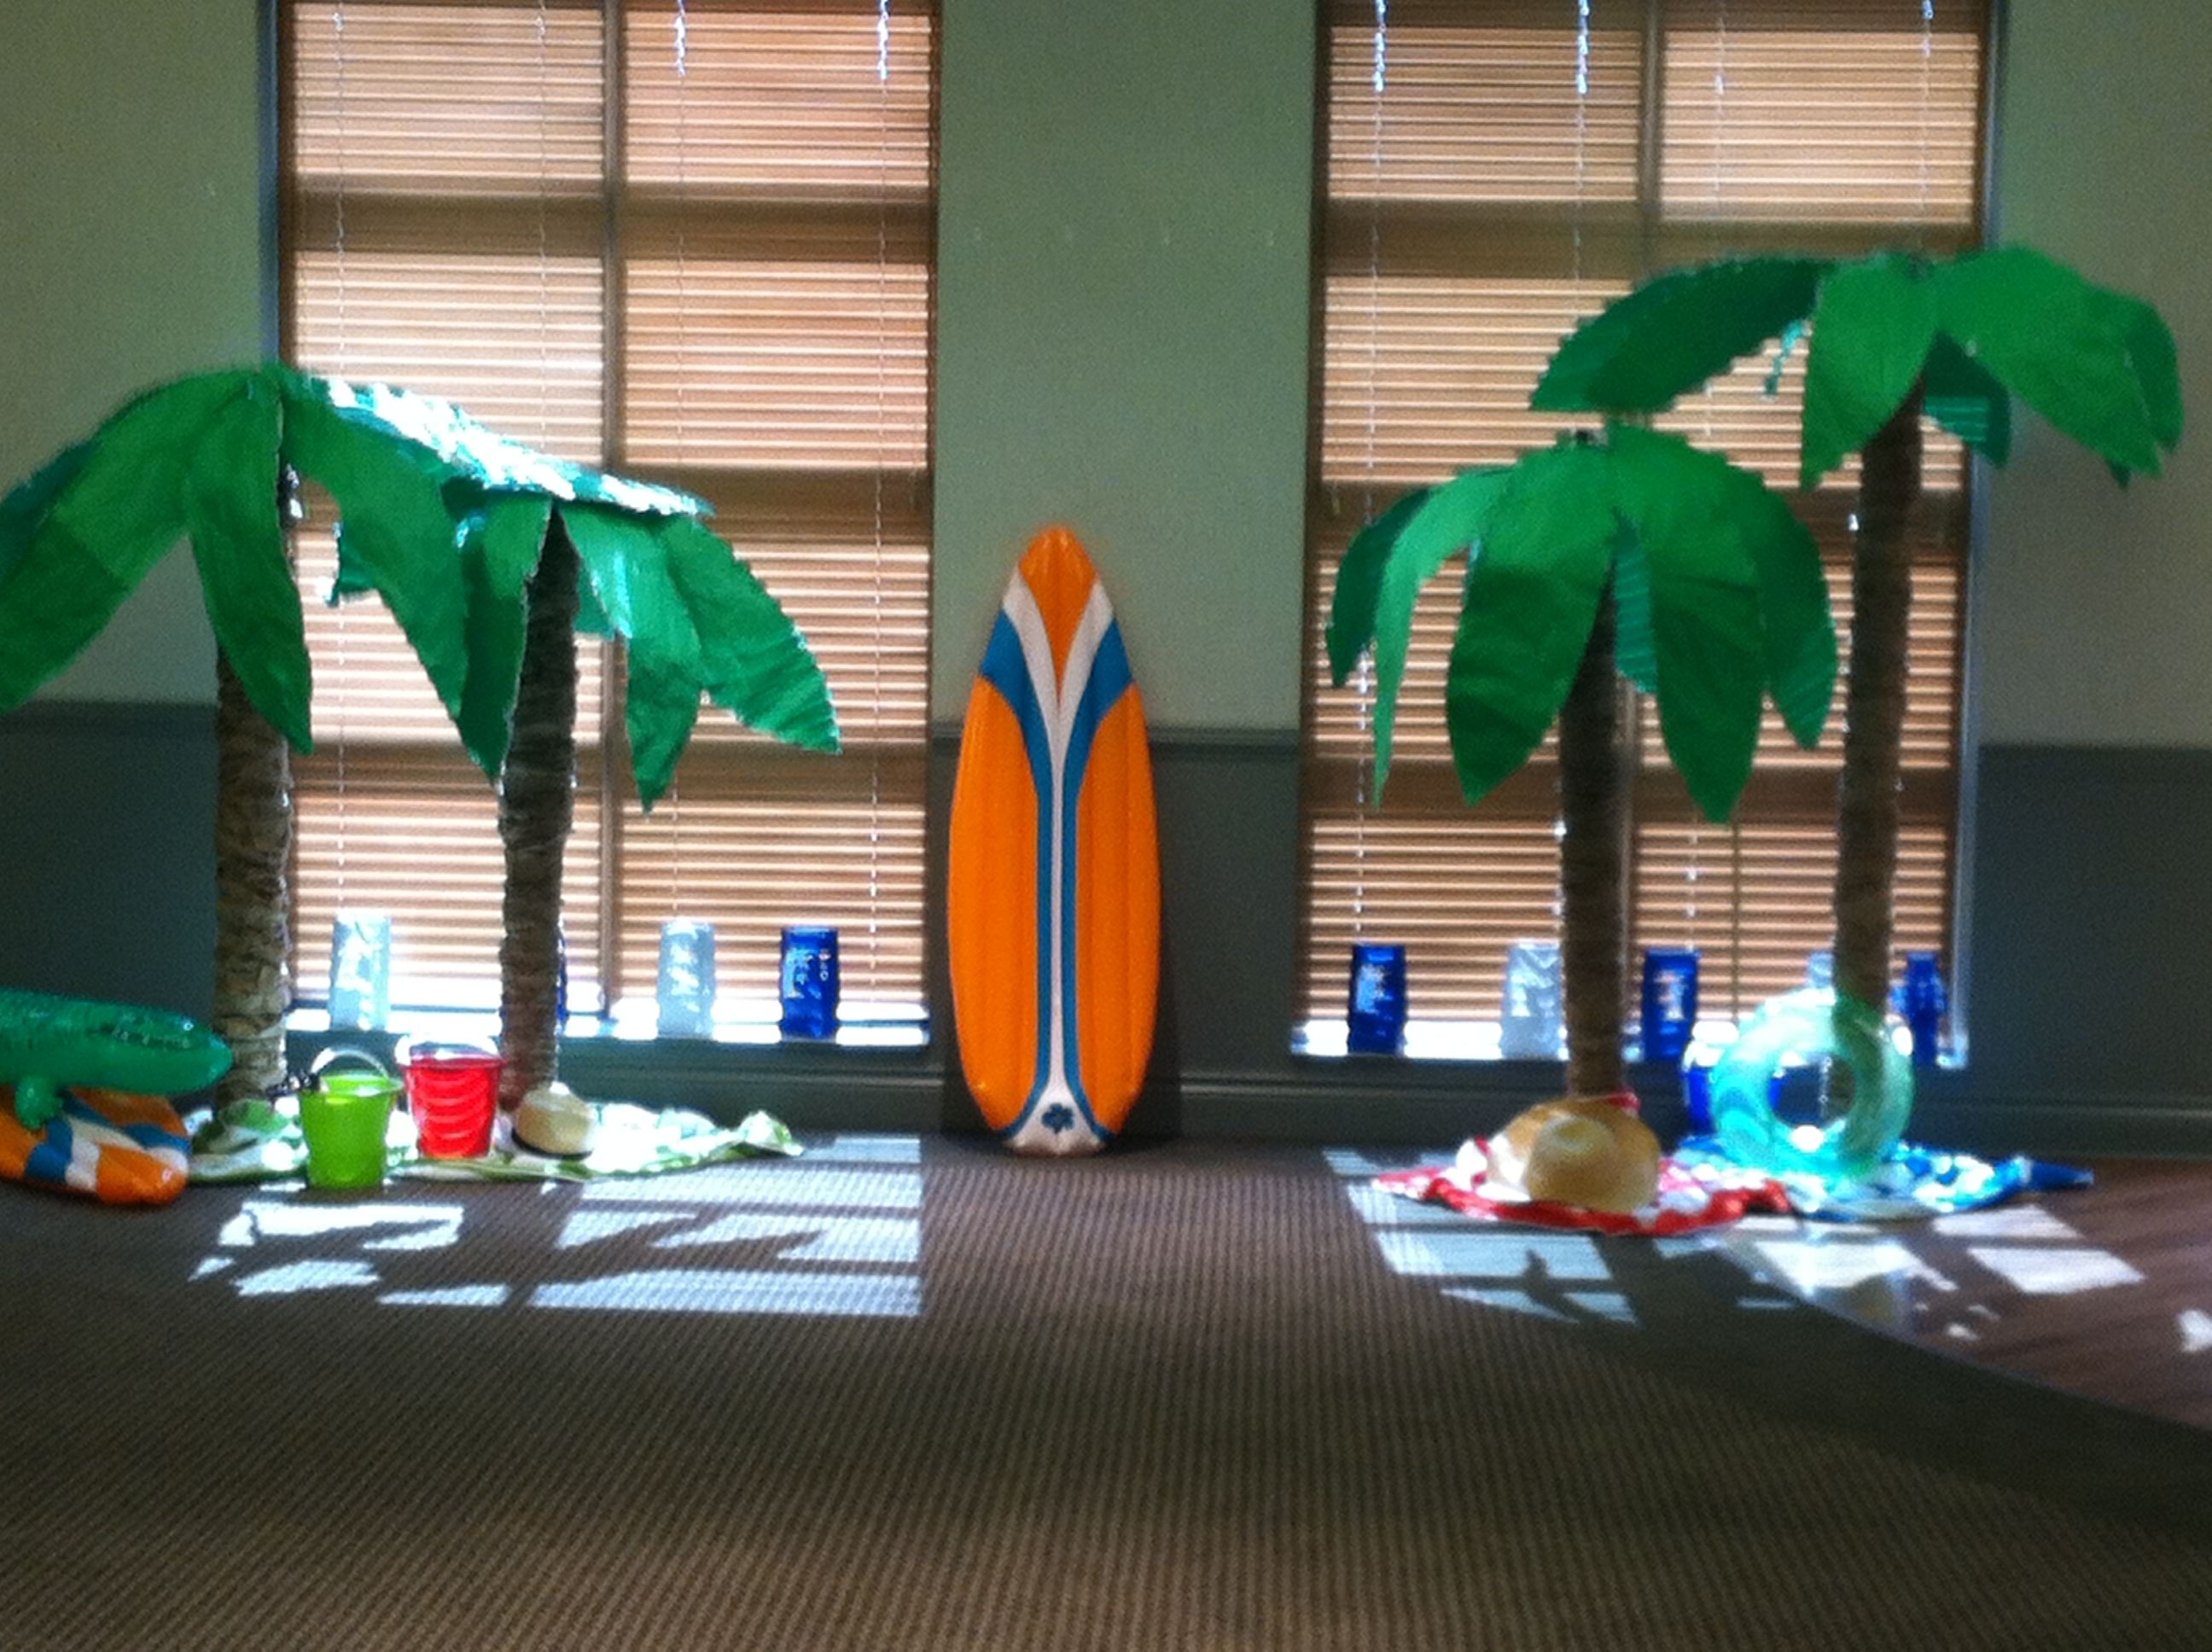 Beach Theme Party Decorations With Images Beach Theme Party